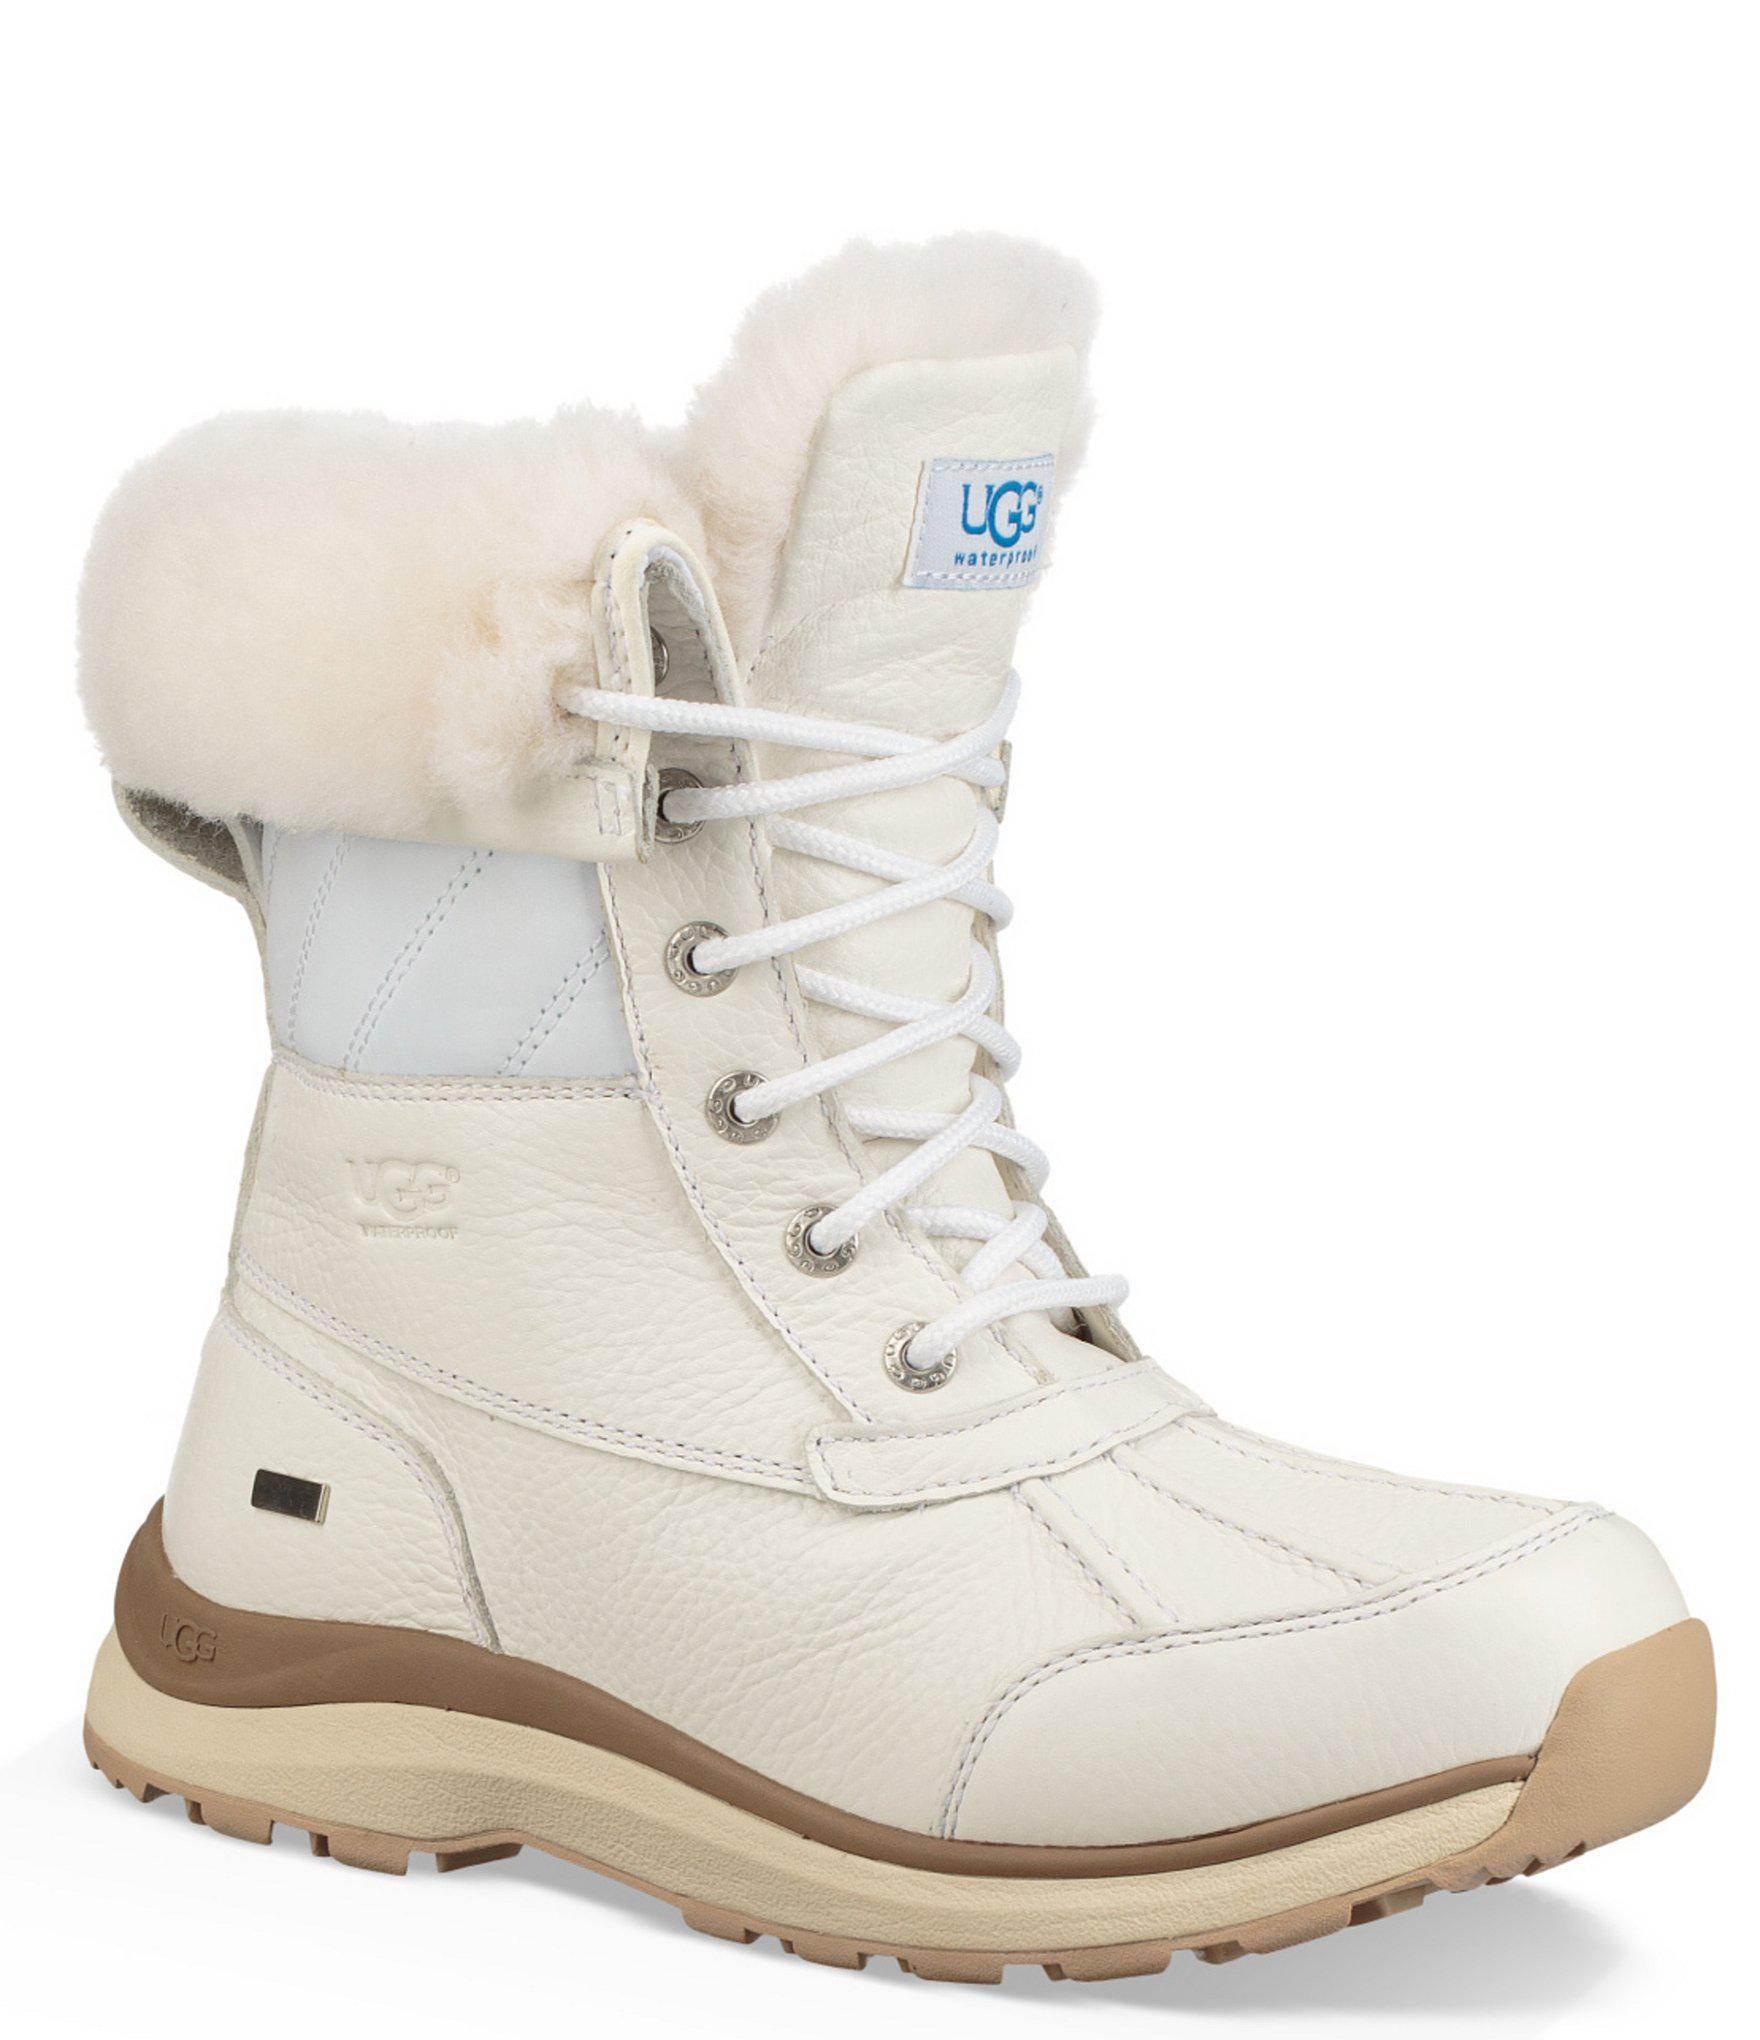 145a0b24254 Ugg White Adirondack Iii Quilted Winter Waterproof Boots